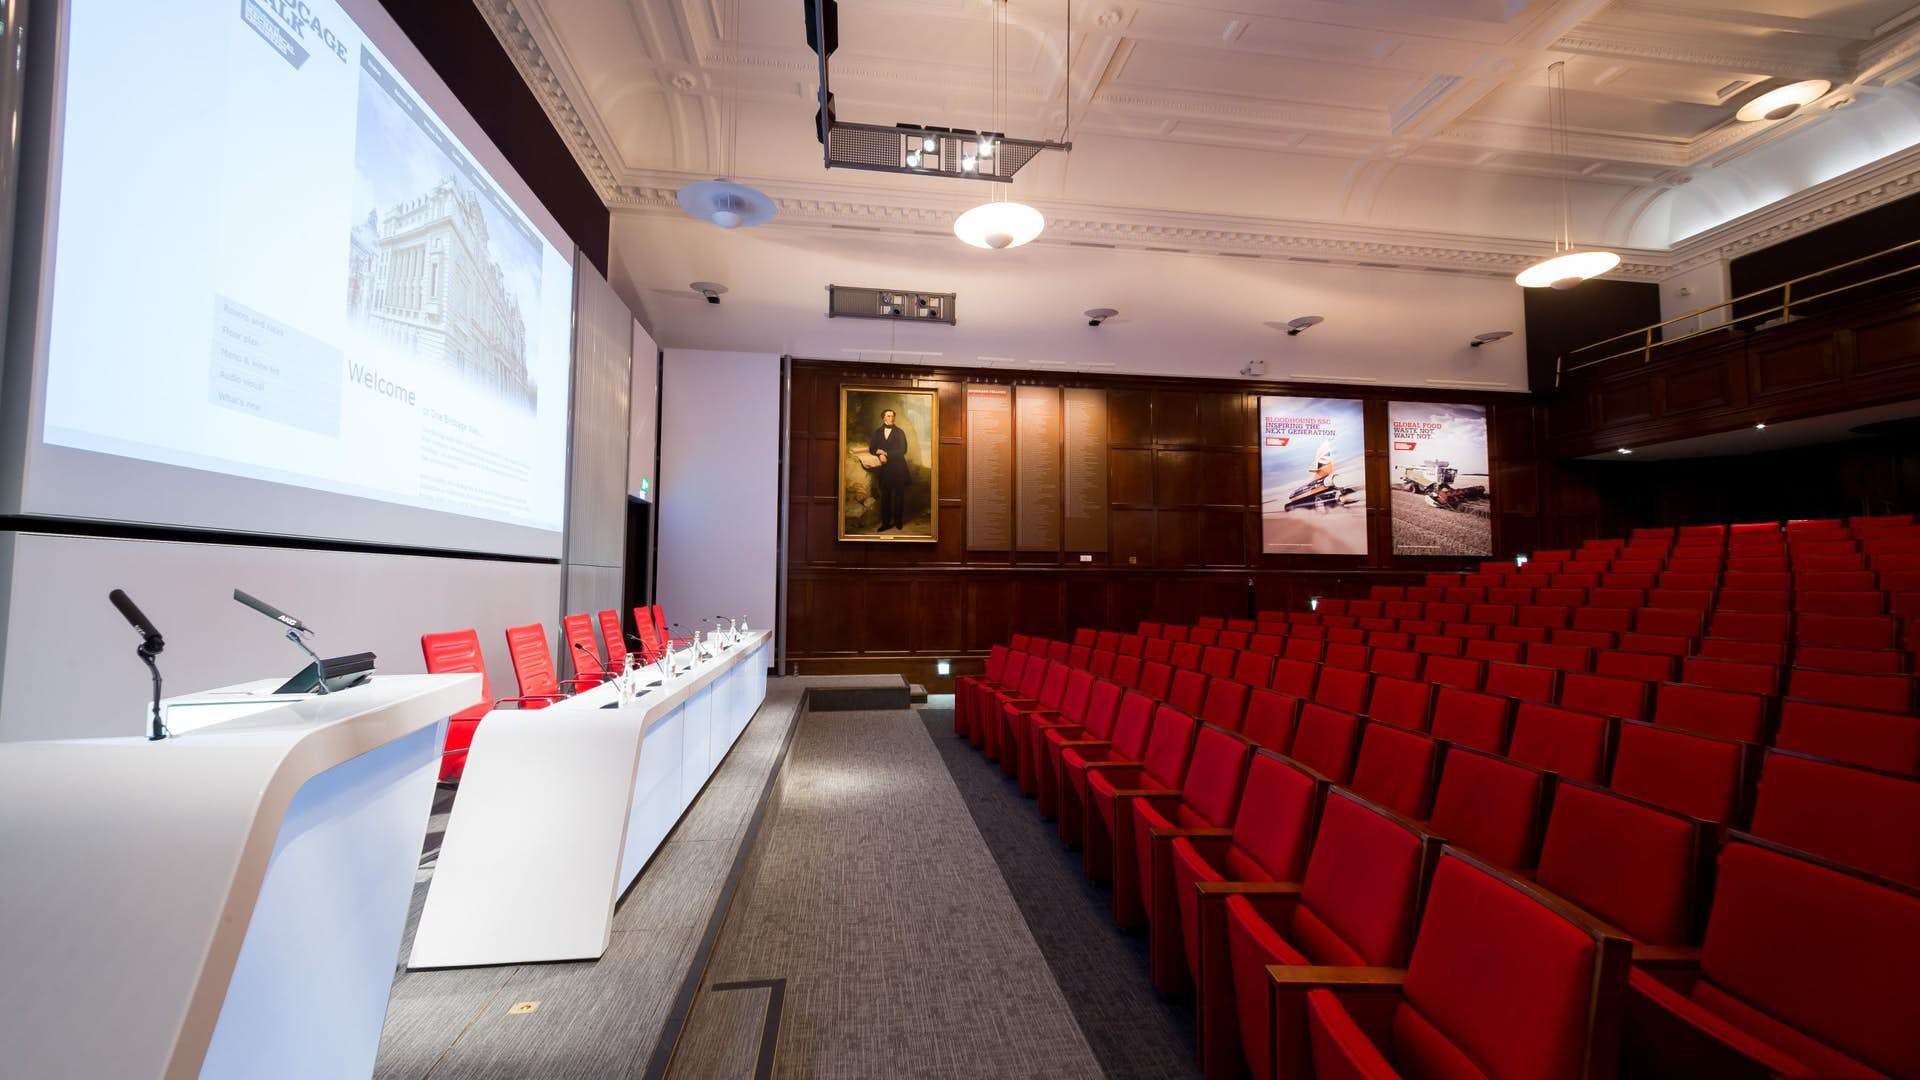 Lecture Theatre panel set up at One Birdcage Walk